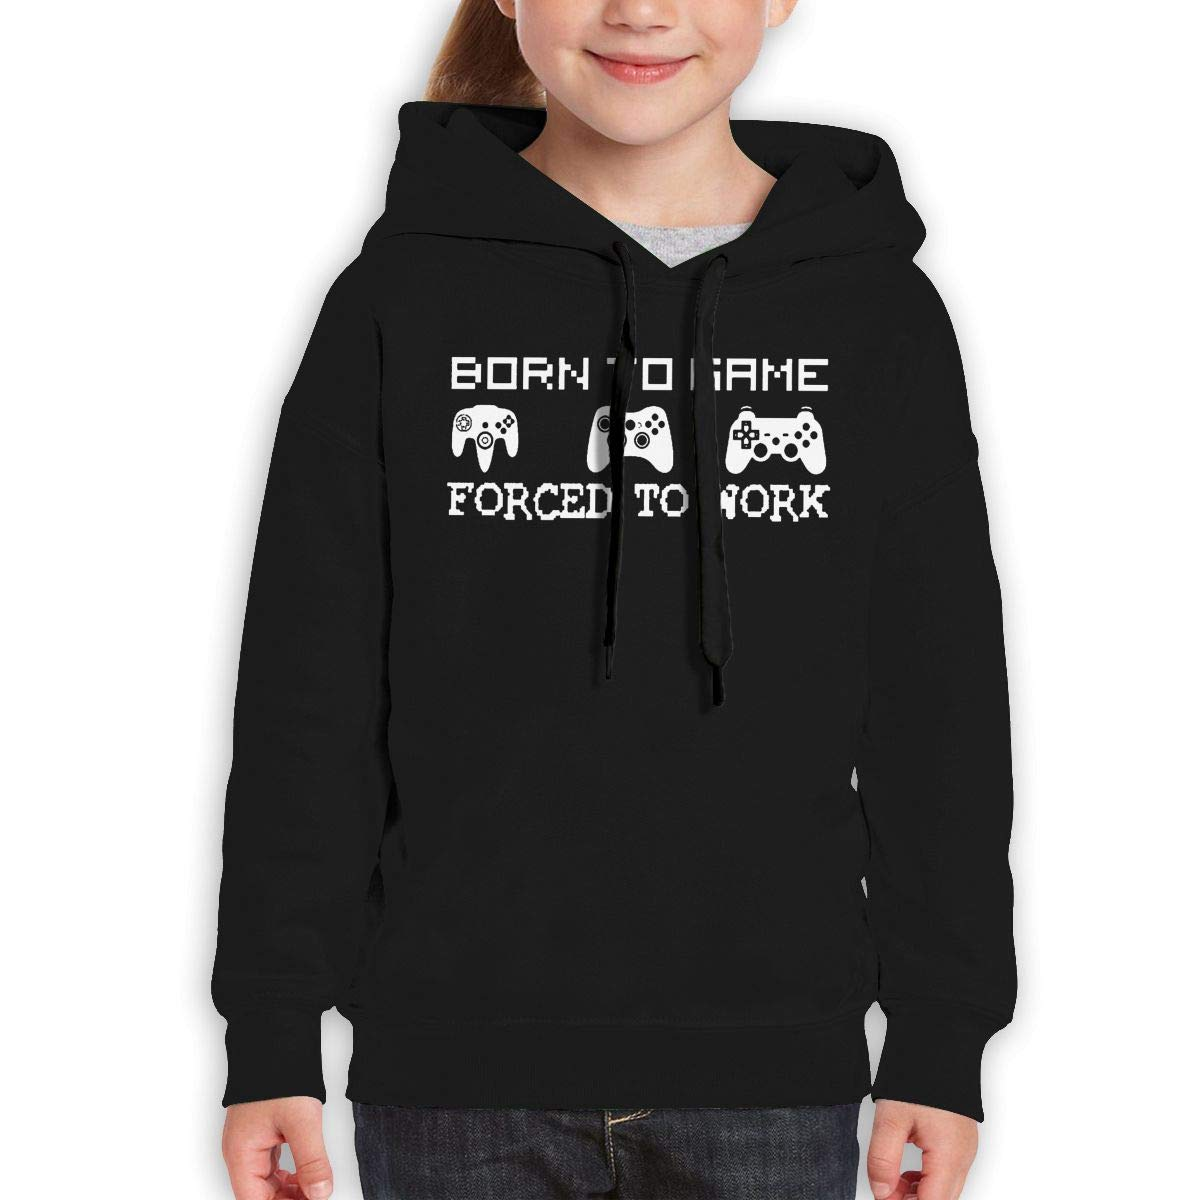 Boys Girls Born to Game Forced to Work Teen Youth Hoodie Black